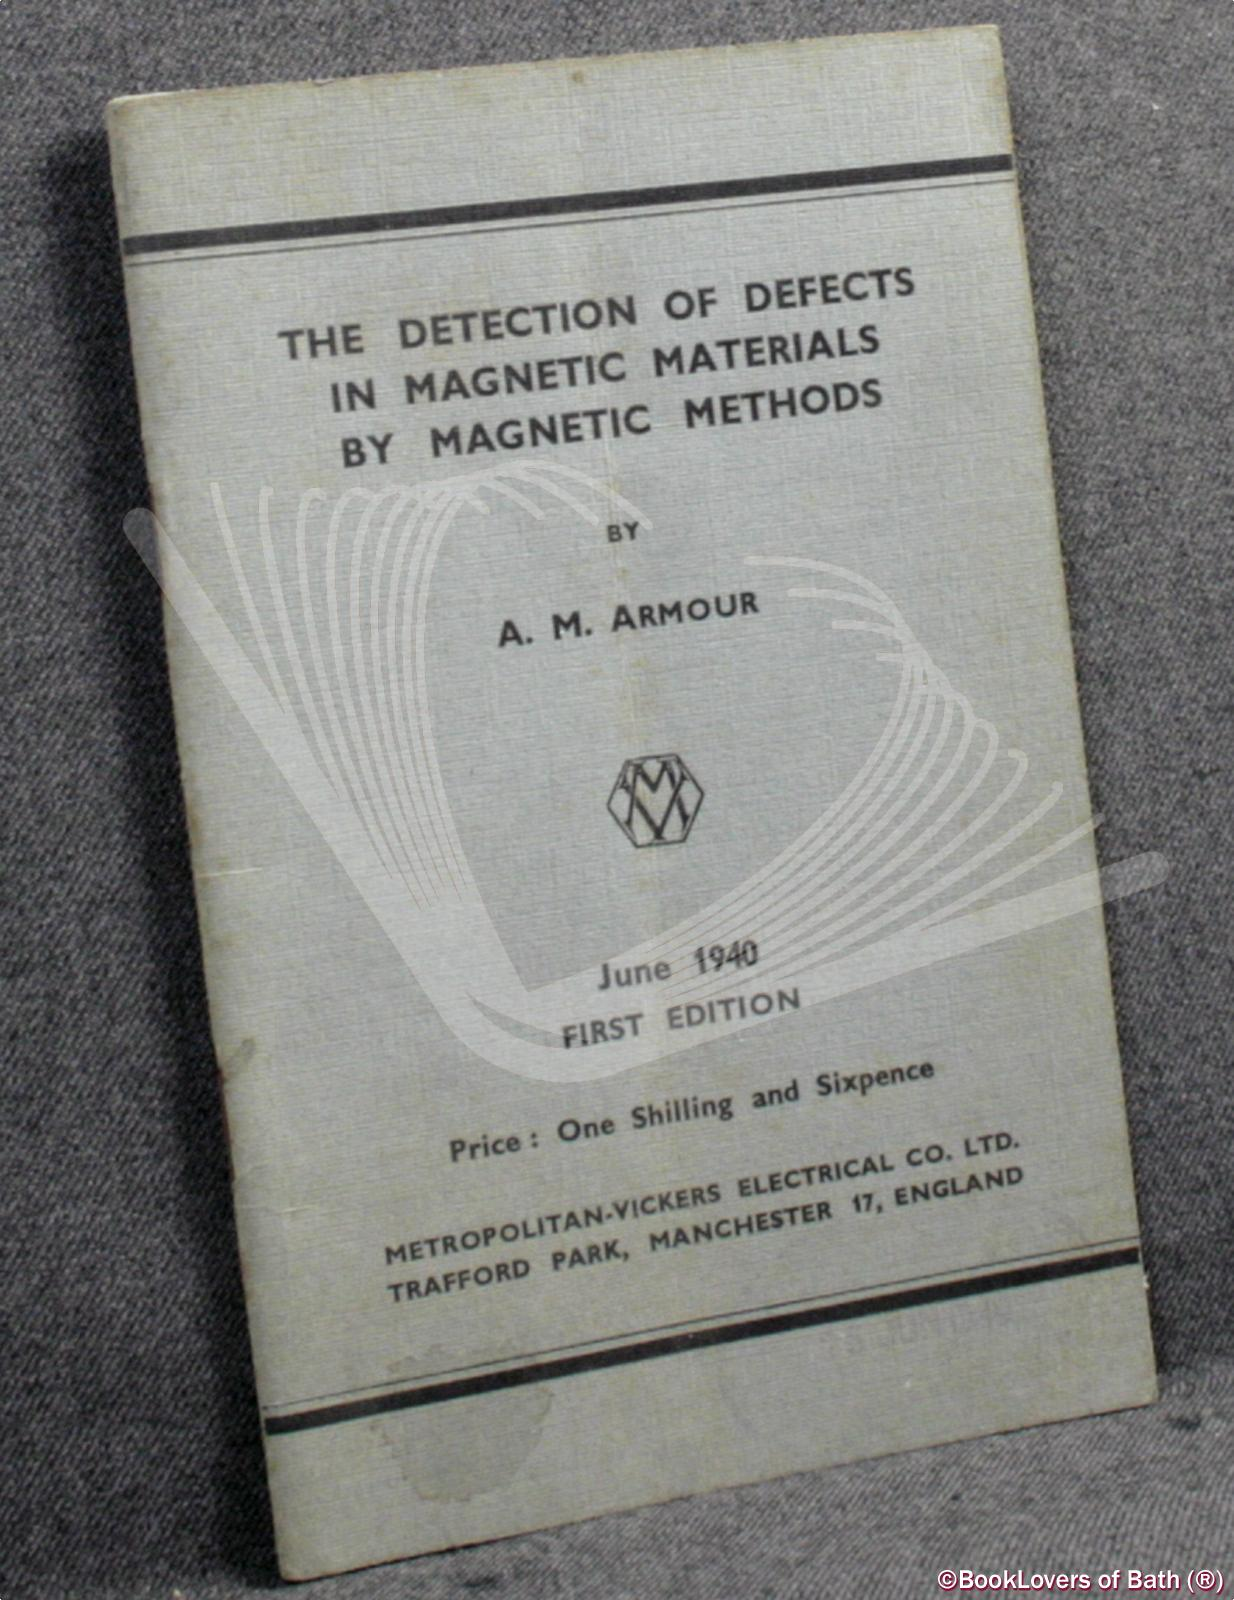 The Detection of Defects in Magnetic Materials by Magnetic Methods - A. M. Armour